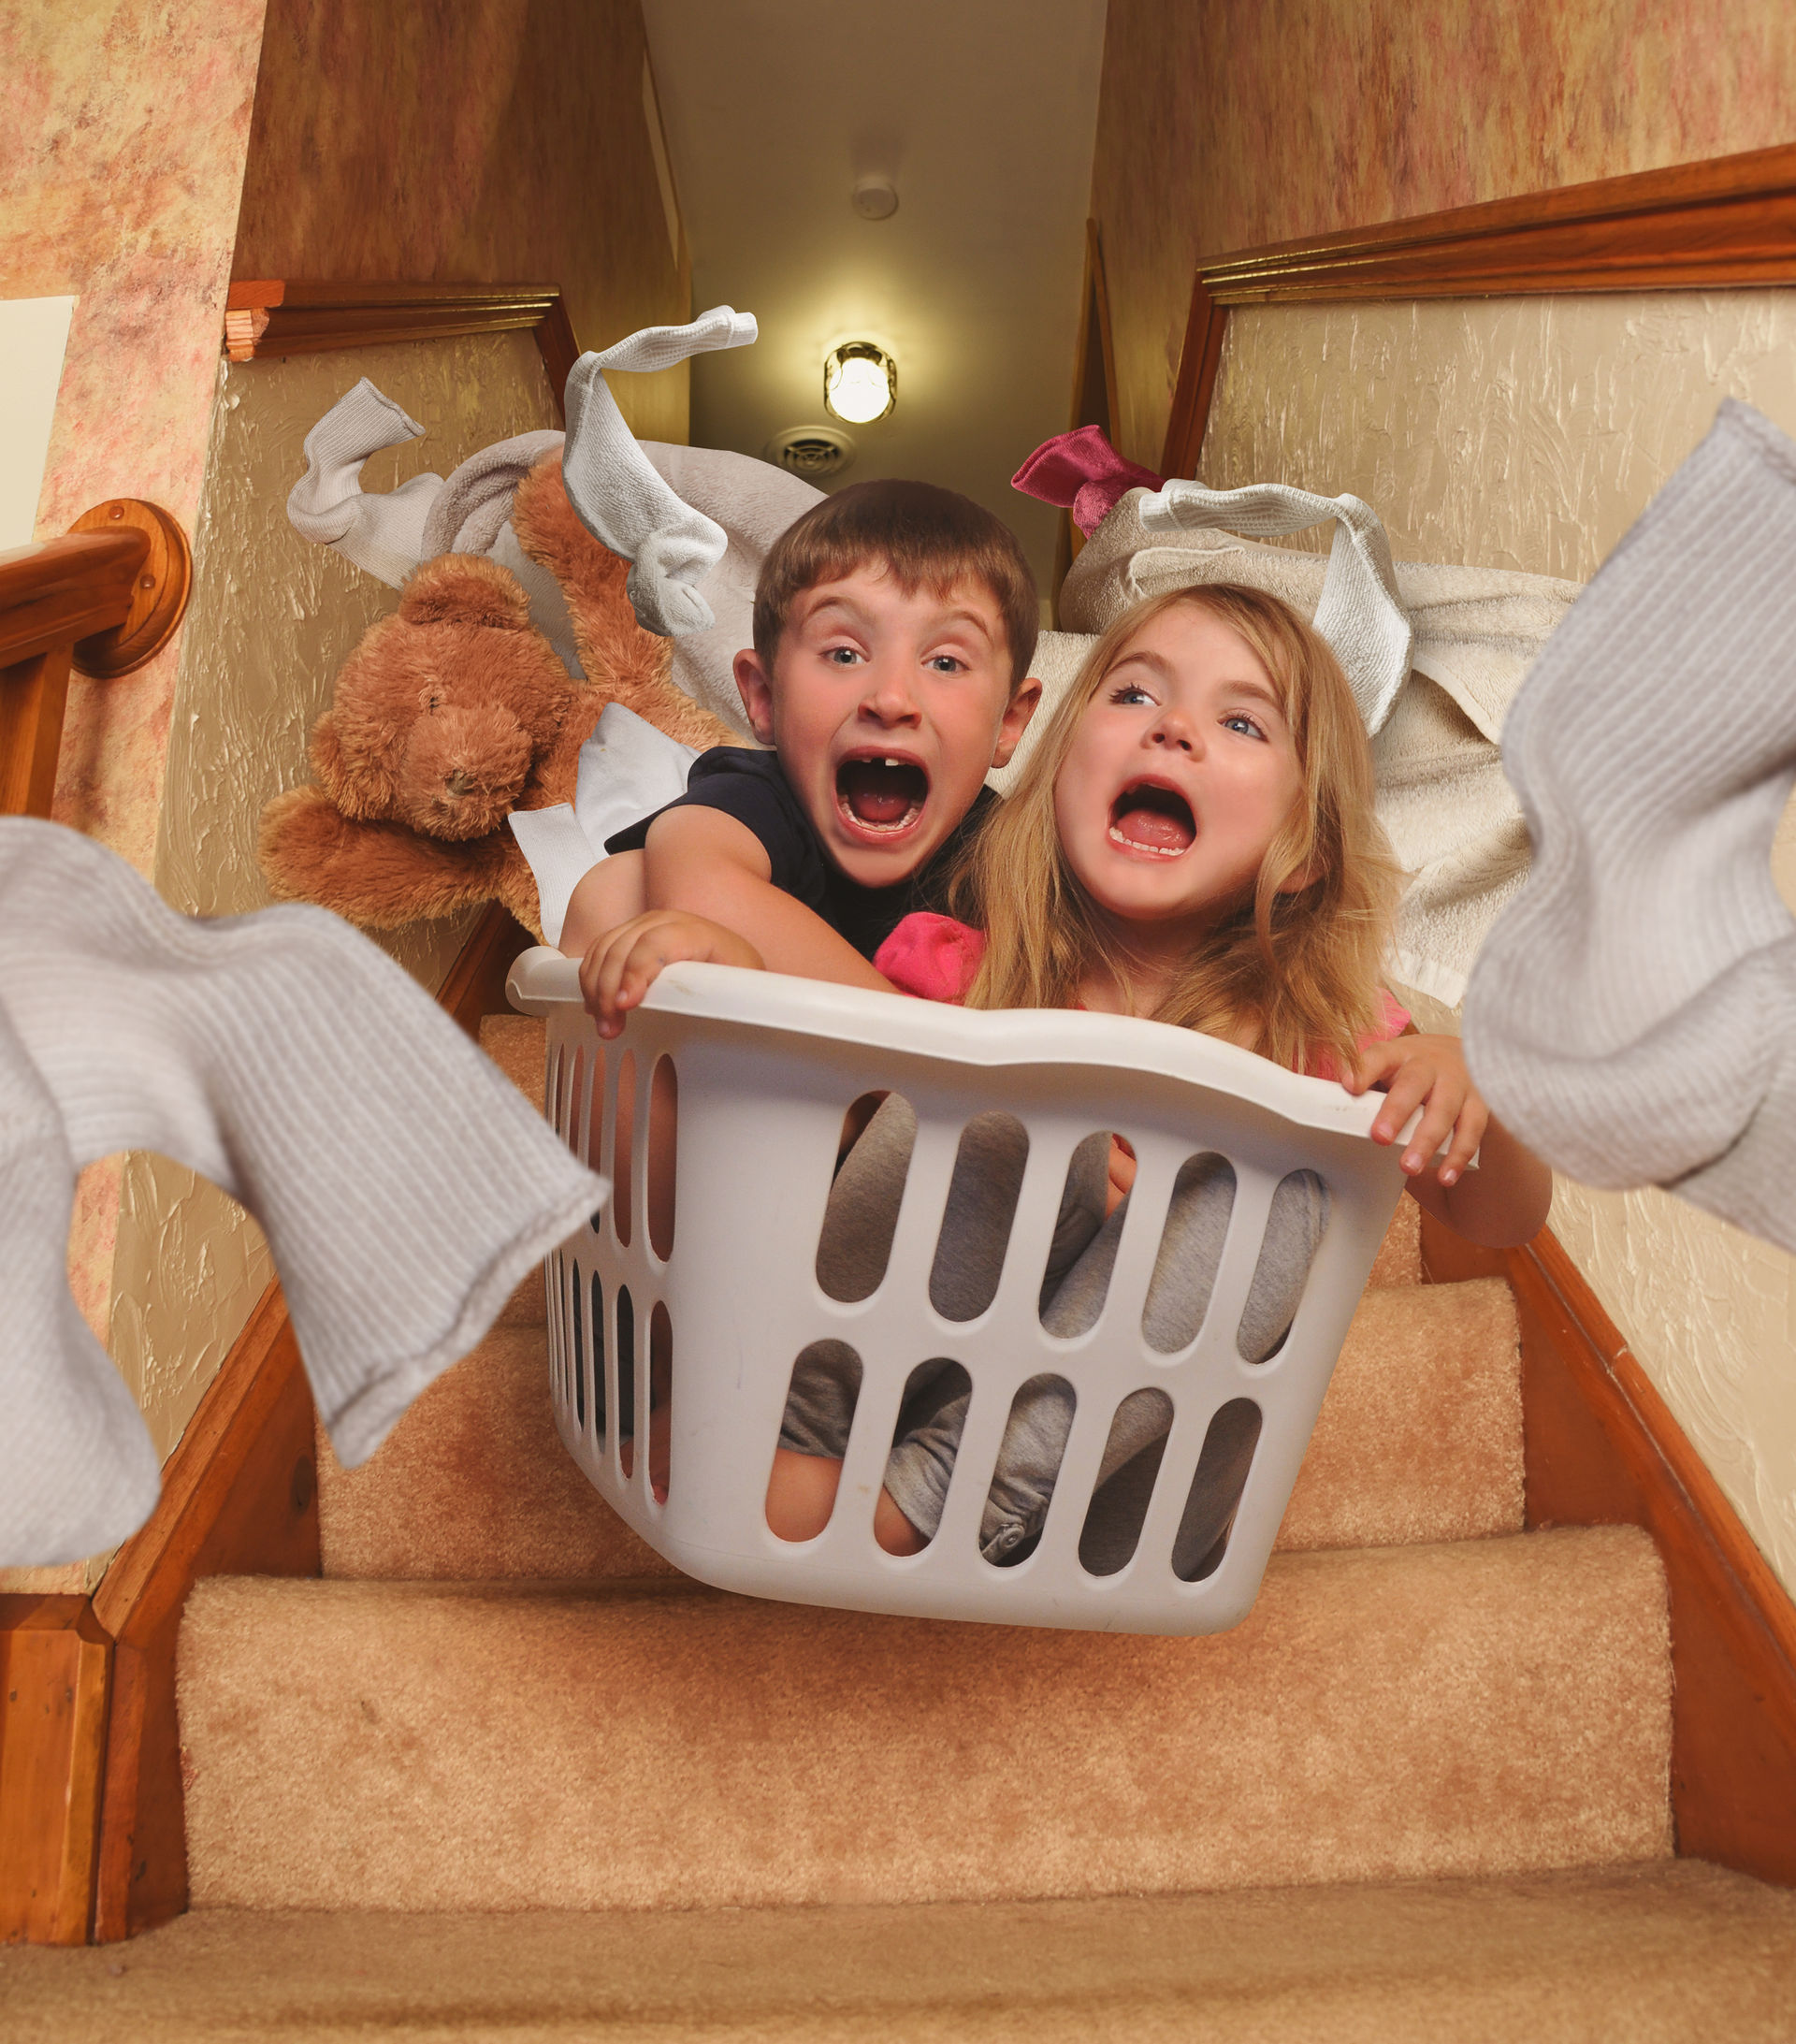 45151048 - two young children are riding in a laundrey basket down the house stairs with socks flying for a parenting, babysitter or humor concept.